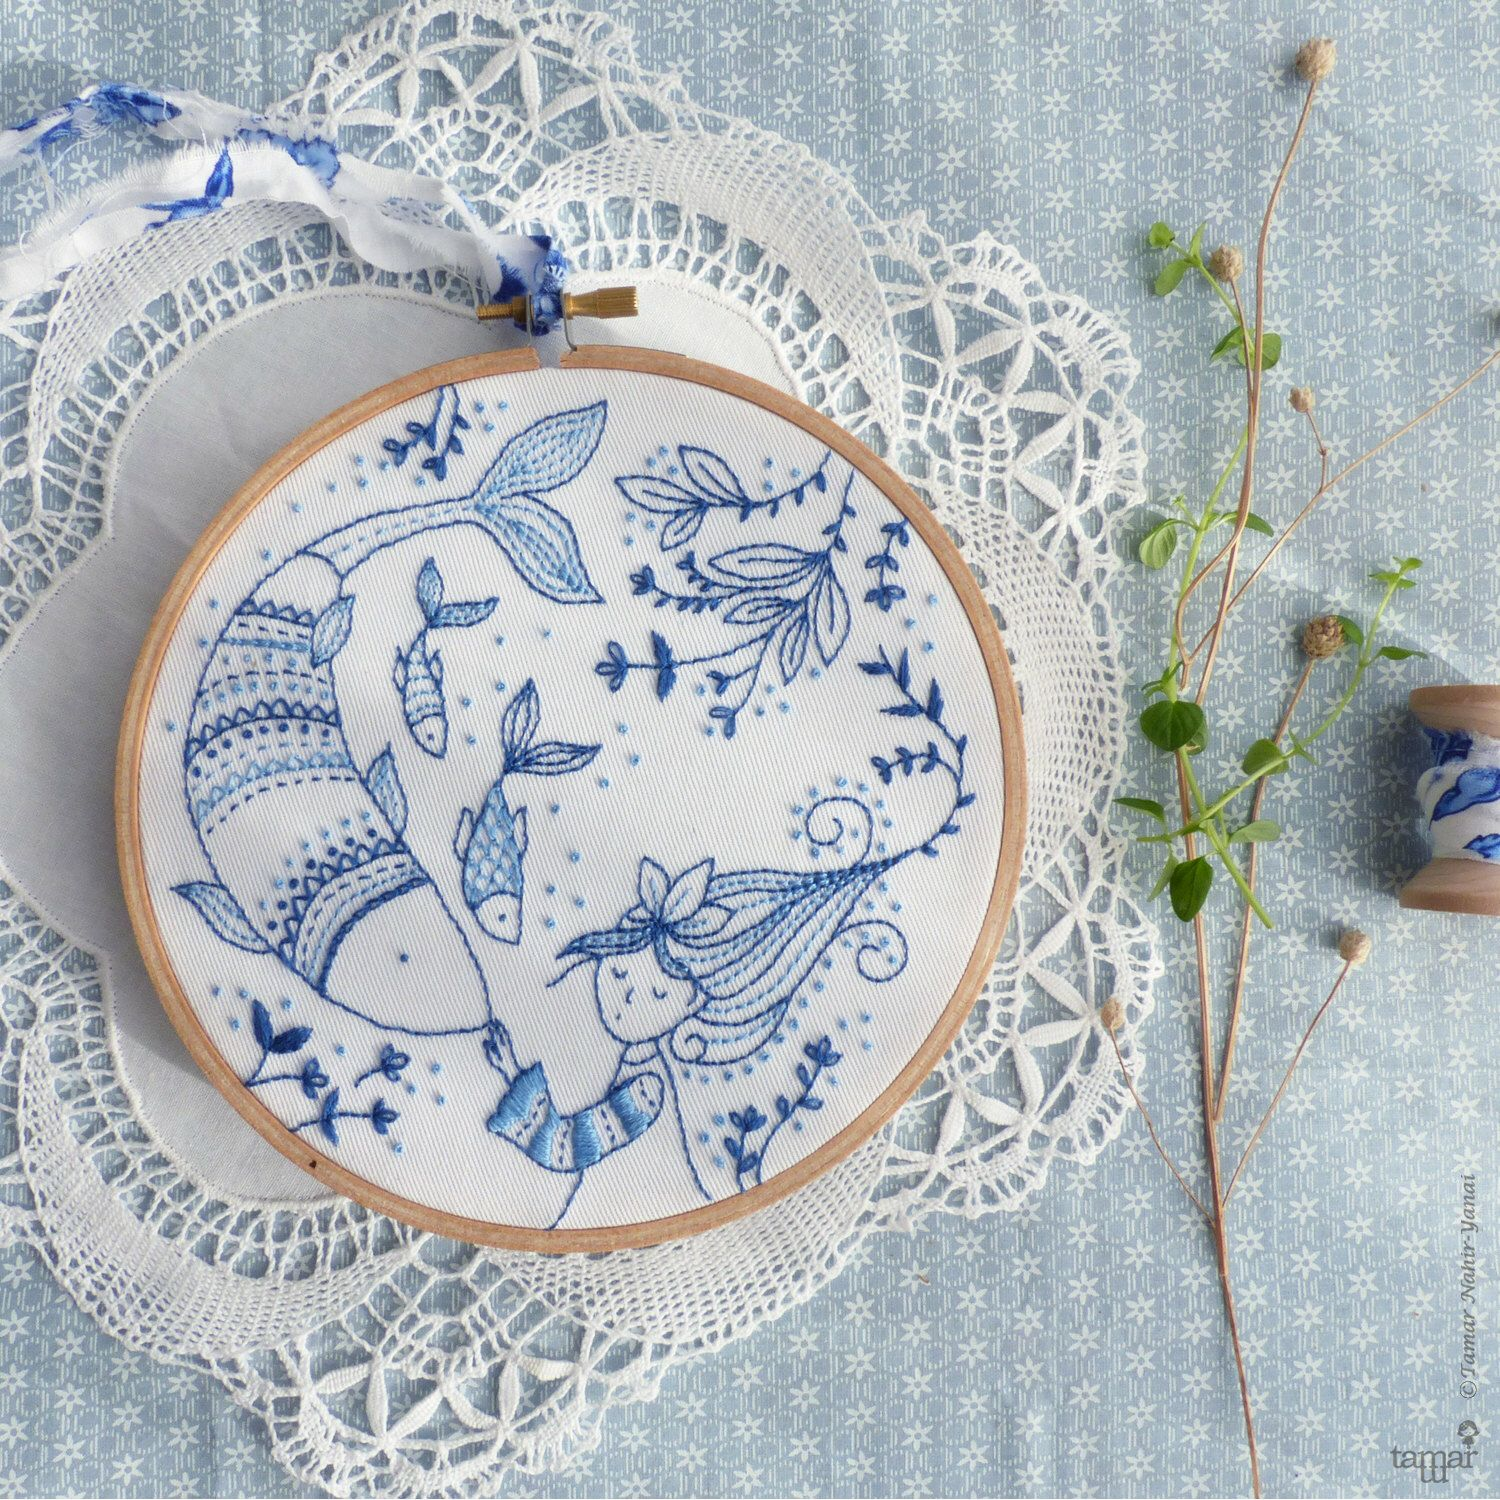 Blue wall art, Sea blue, Hand embroidery - Ocean Princess Embroidery kit - Blue white, Christmas gift, Embroidery hoop art, Christmas craft by TamarNahirYanai on Etsy https://www.etsy.com/uk/listing/266769112/blue-wall-art-sea-blue-hand-embroidery